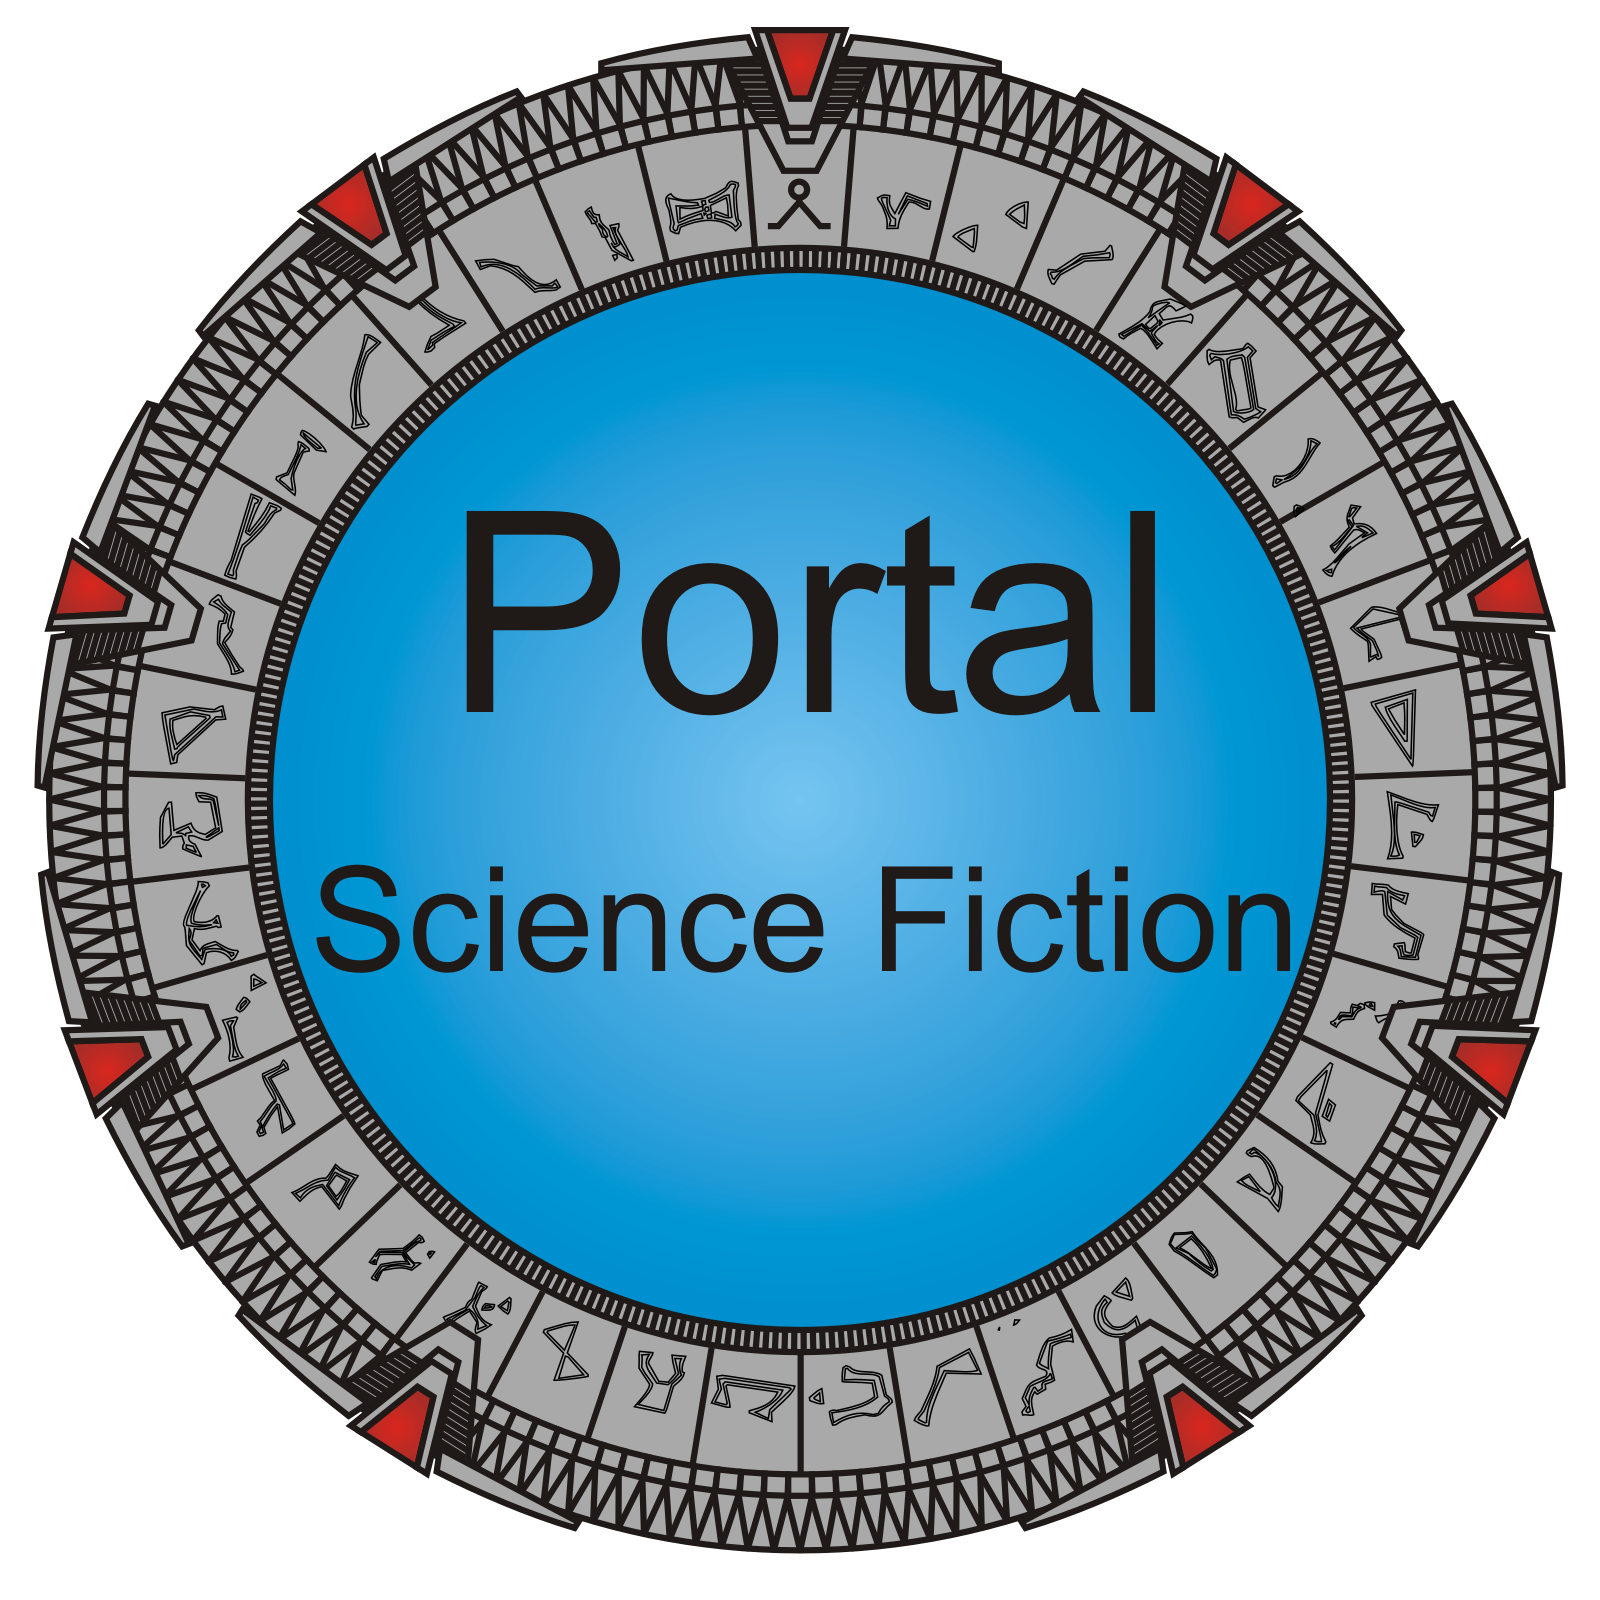 File:Portal Science Fiction.png - Science Fiction PNG